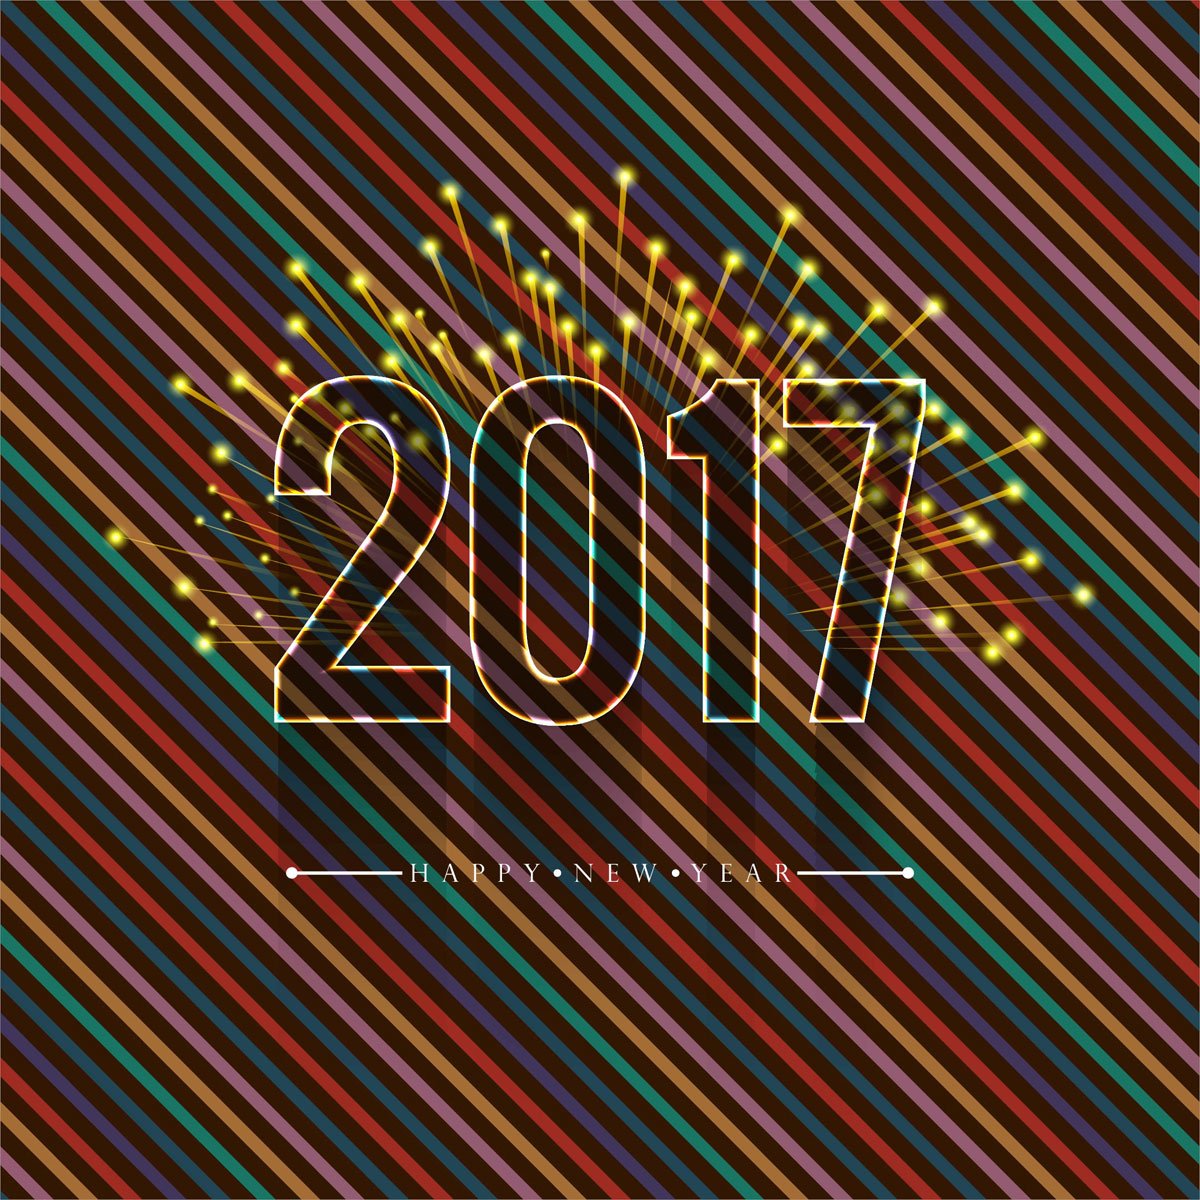 Wishing You a Happy New Year 2017 Quotes